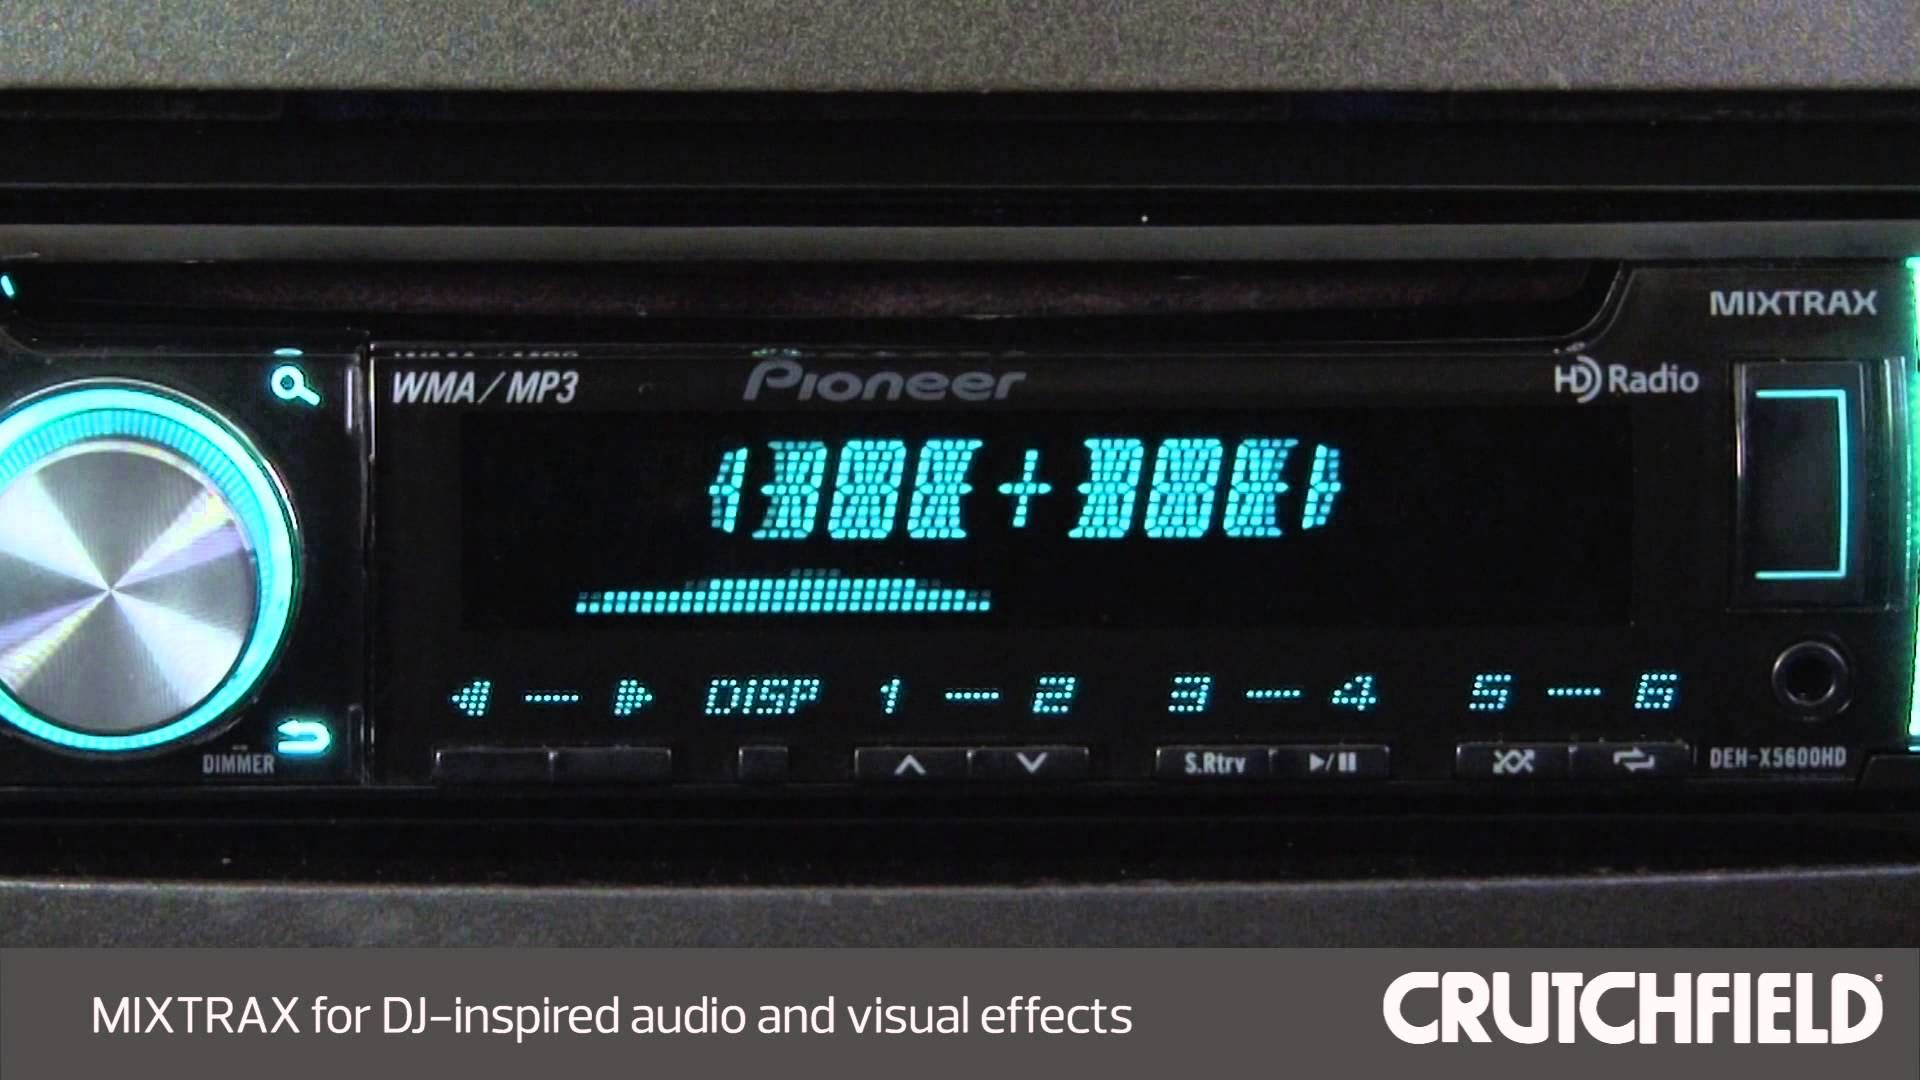 Pioneer Deh X5600hd Car Stereo Display And Controls Demo Sony Audio Manual Crutchfield Video Caraudio Carreceiver